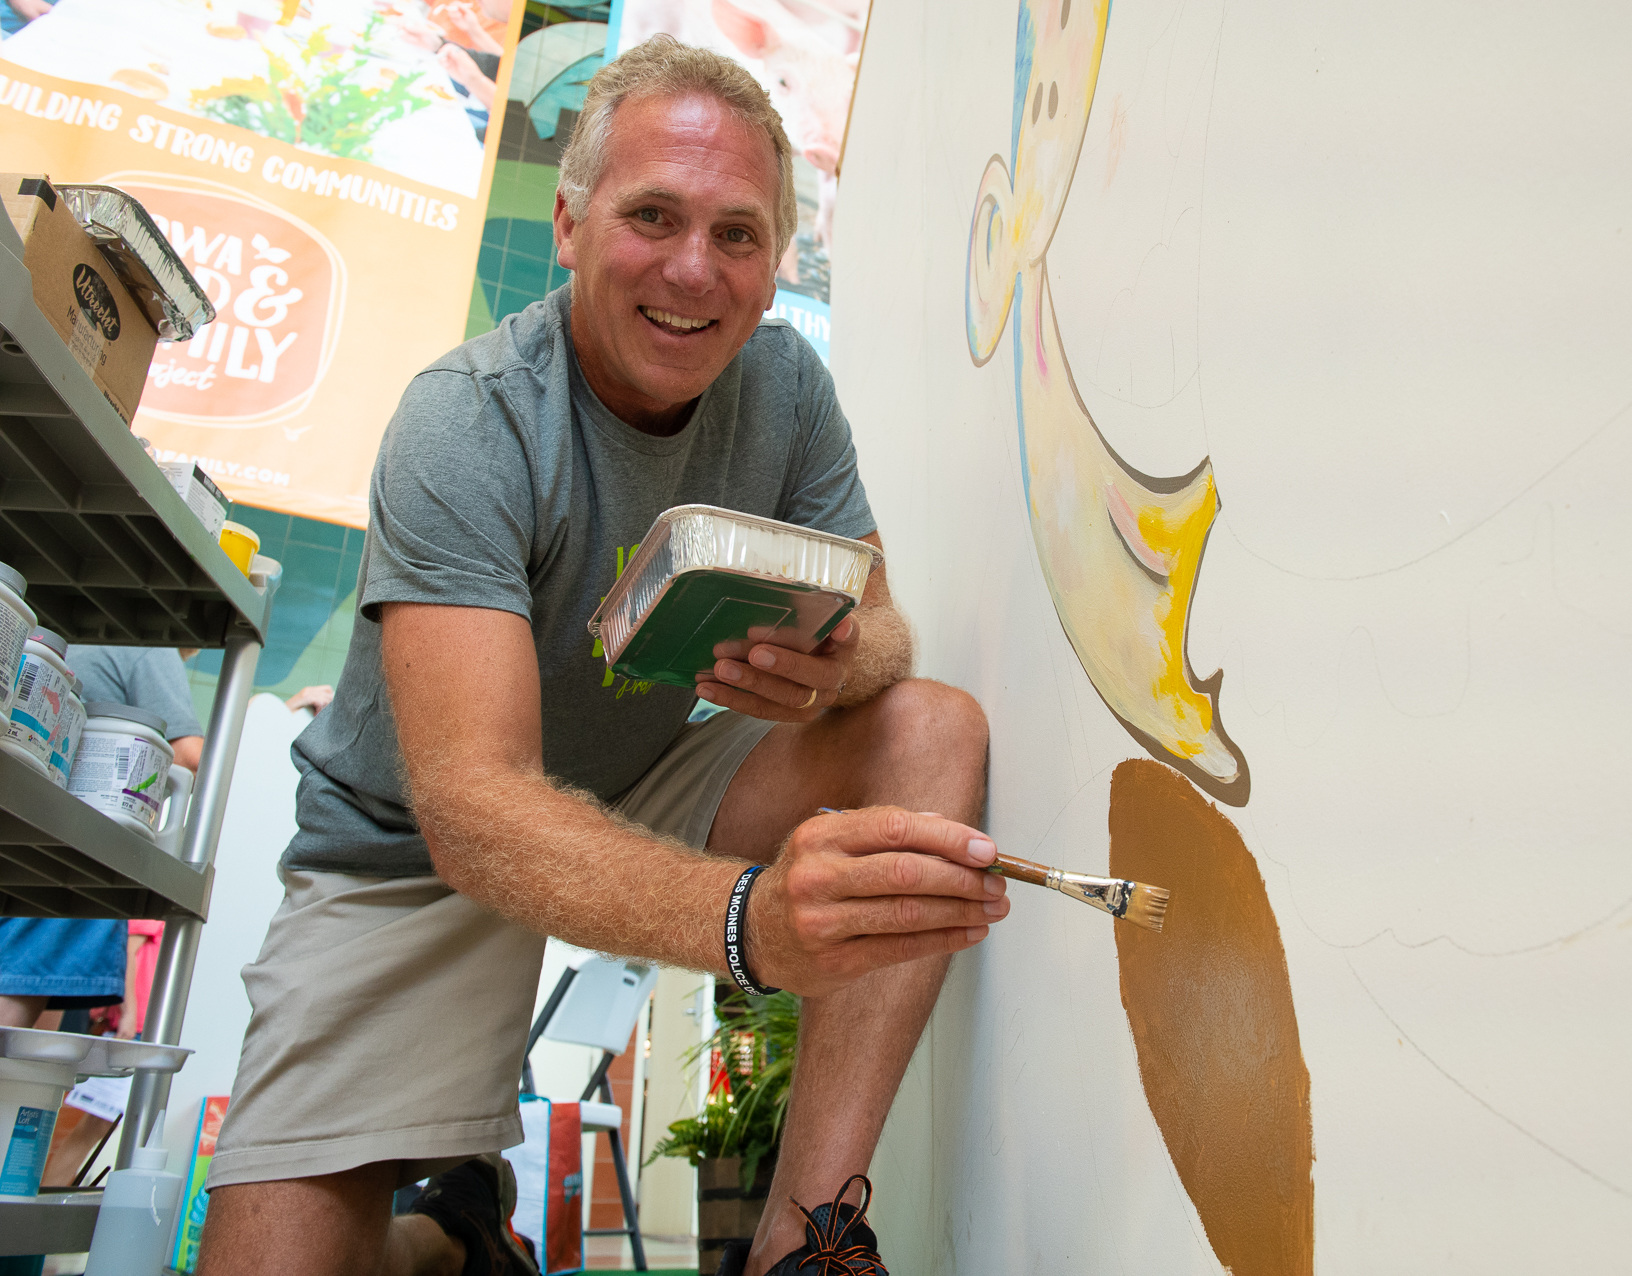 Chuck Long, director of the Iowa Sports Foundation and former University of Iowa football player, lends his artistic skills to star the 'Everything Starts with Agriculture' mural. Photo credit: Joseph L. Murphy/Iowa Soybean Association